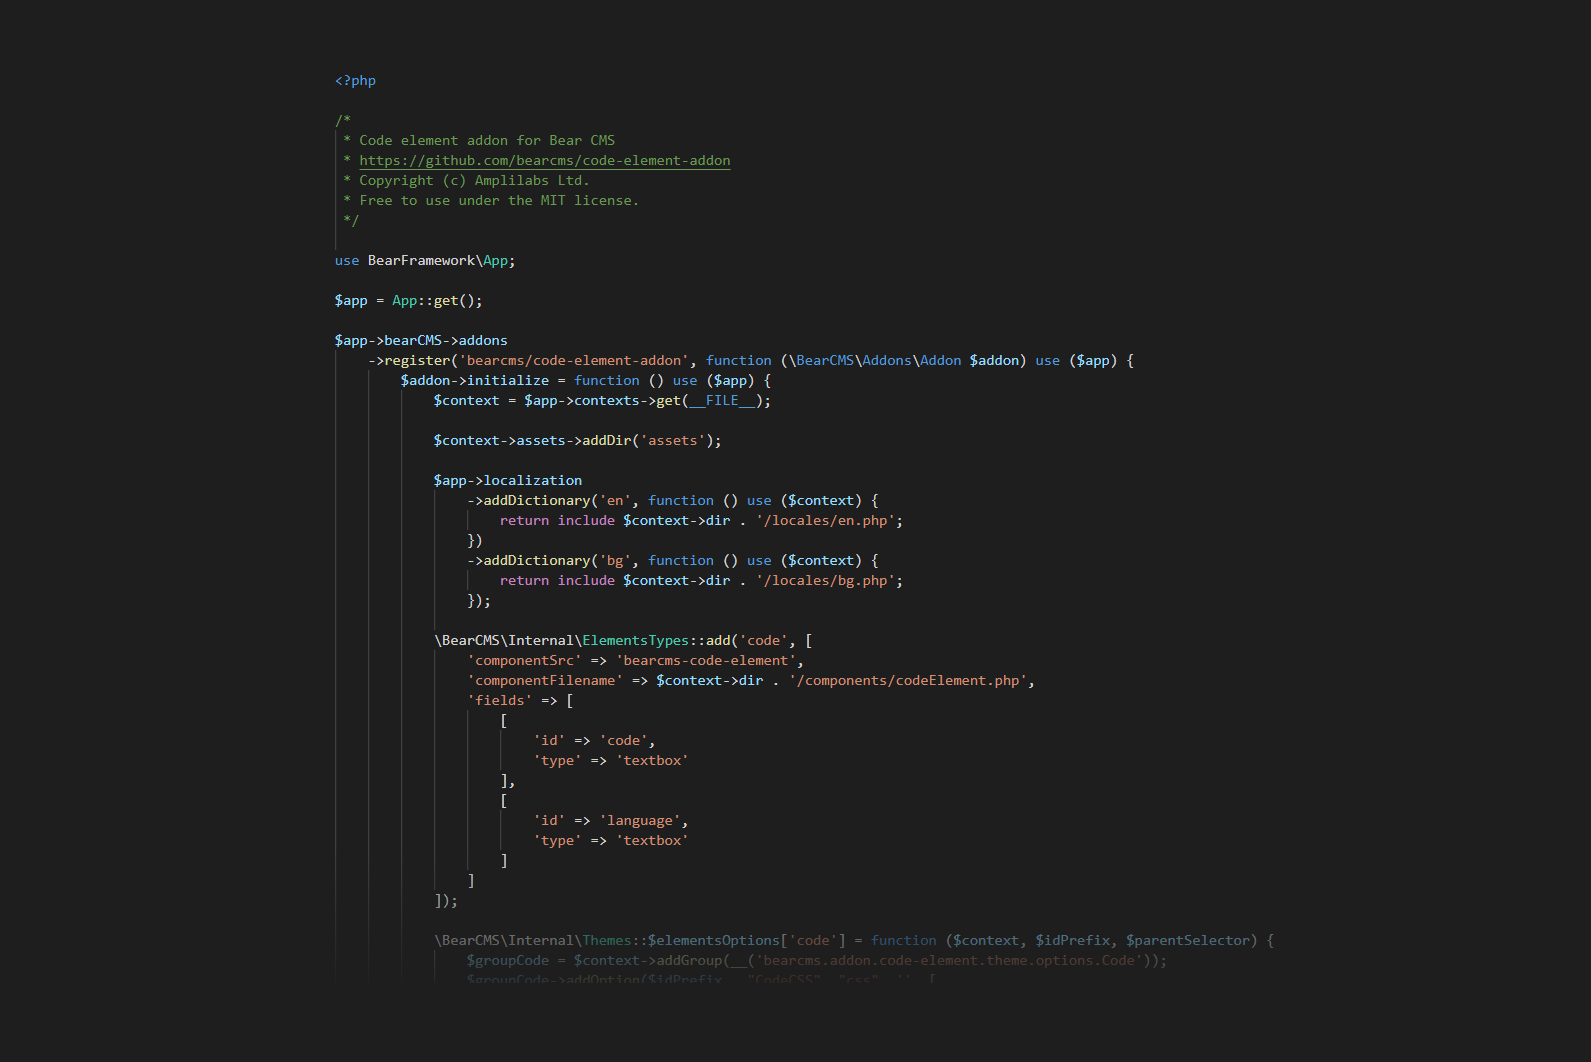 New addon: Source code element